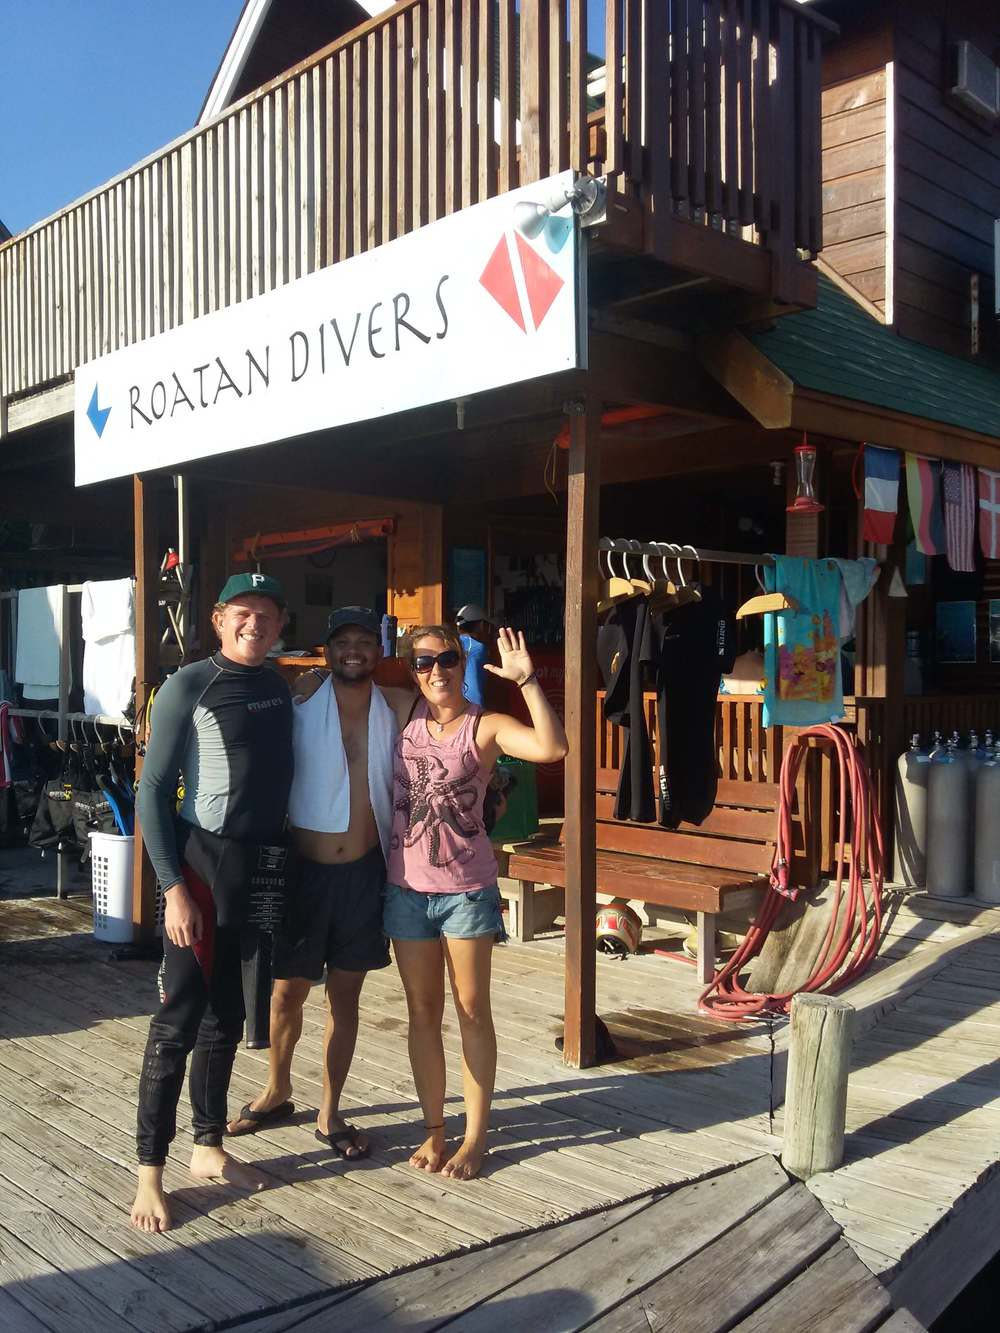 Tanvir completed his PADI Advanced Open Water Diver course with Roatan Divers